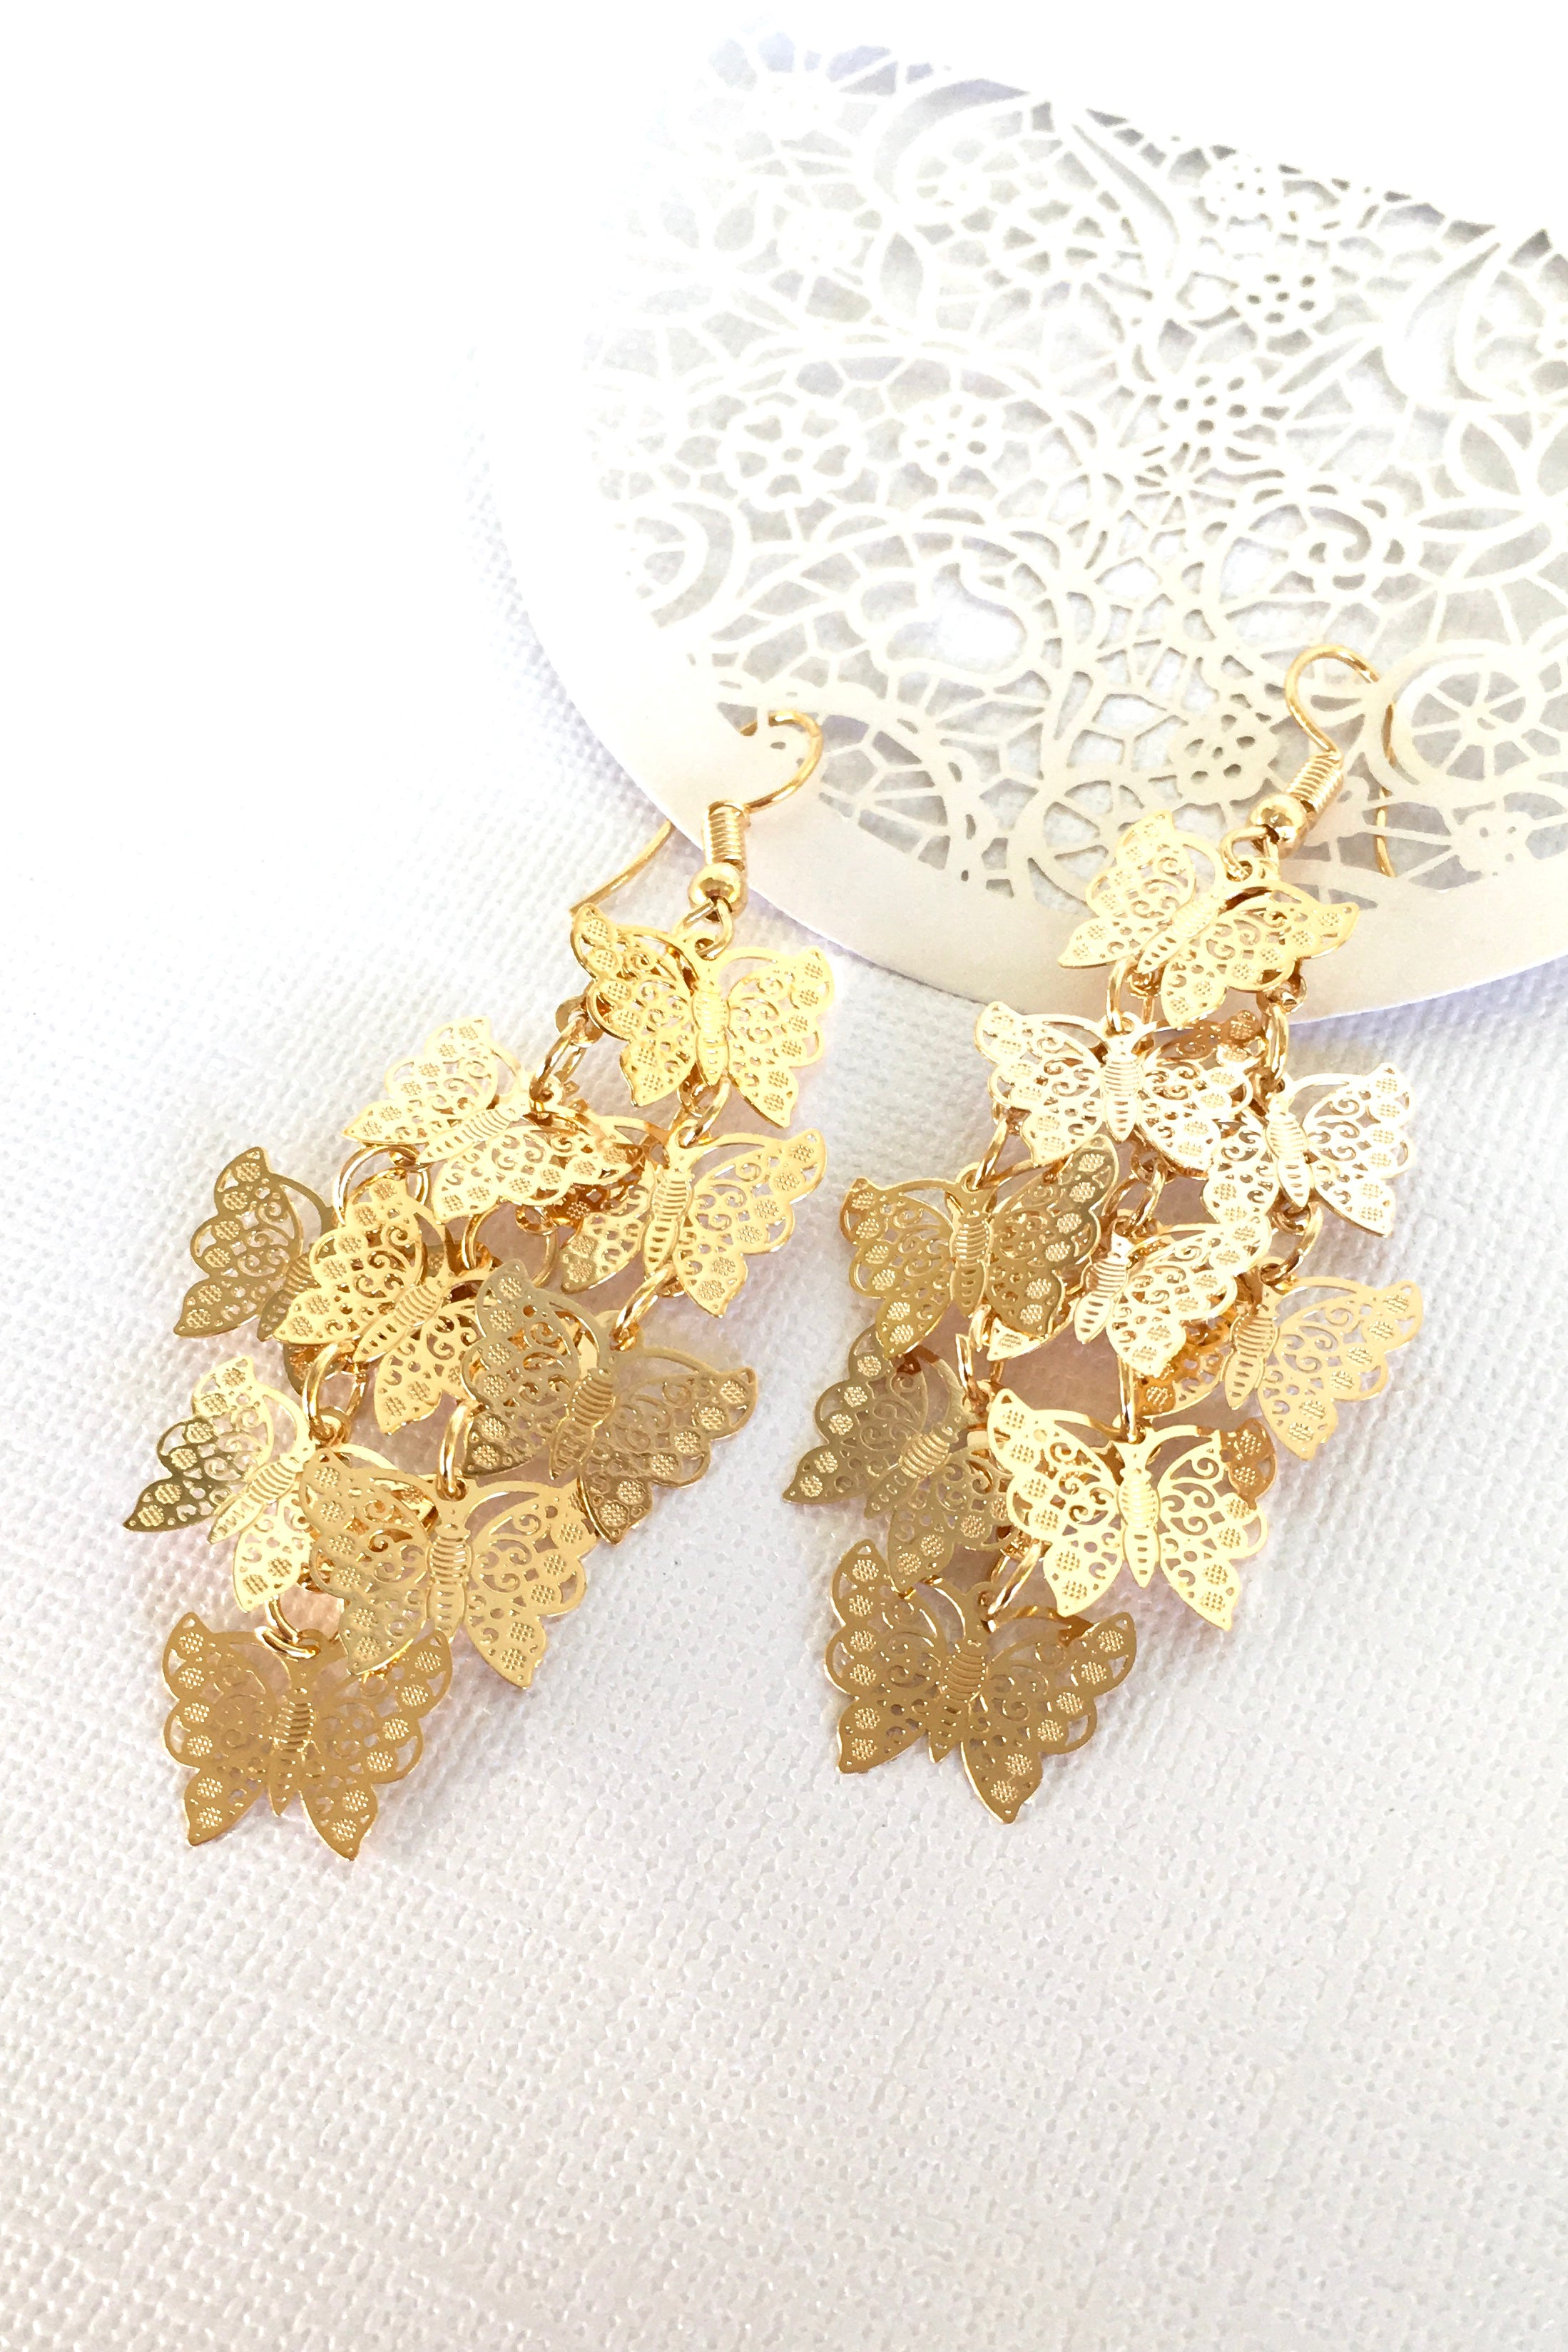 Earrings Flutter Butterfly Flight Golden